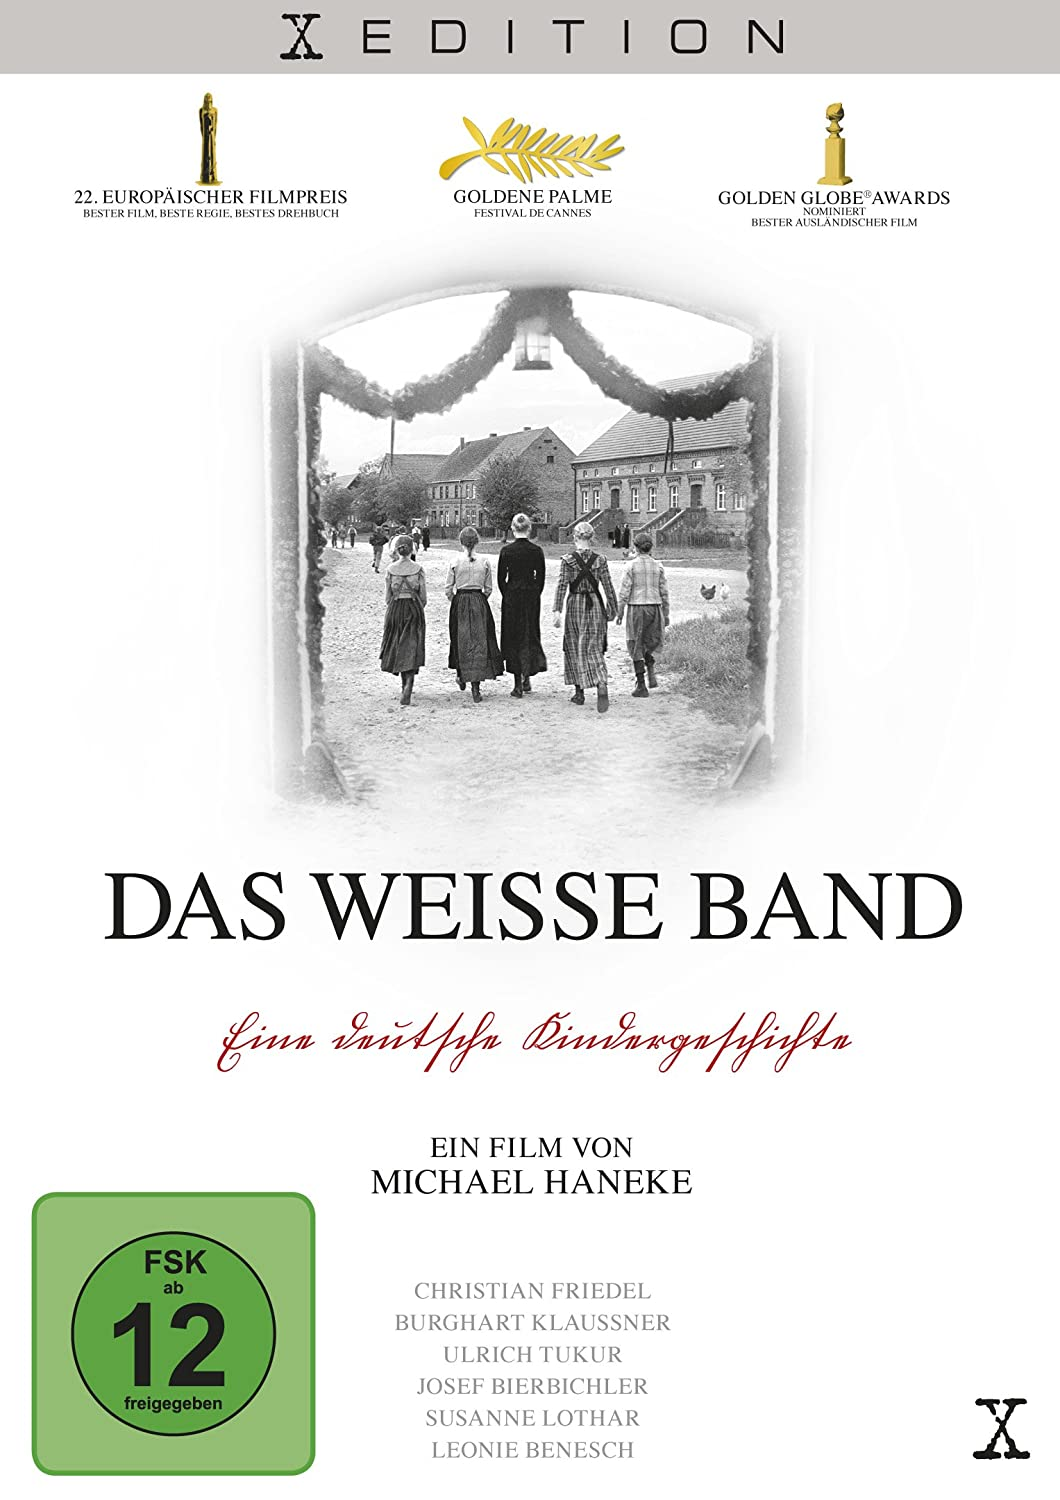 Das weiße Band [Deluxe Edition] [2 DVDs]: Amazon.de: Christian Friedel,  Ernst Jacobi, Leonie Benesch, Michael Haneke, Christian Friedel, Ernst  Jacobi: DVD & Blu-ray